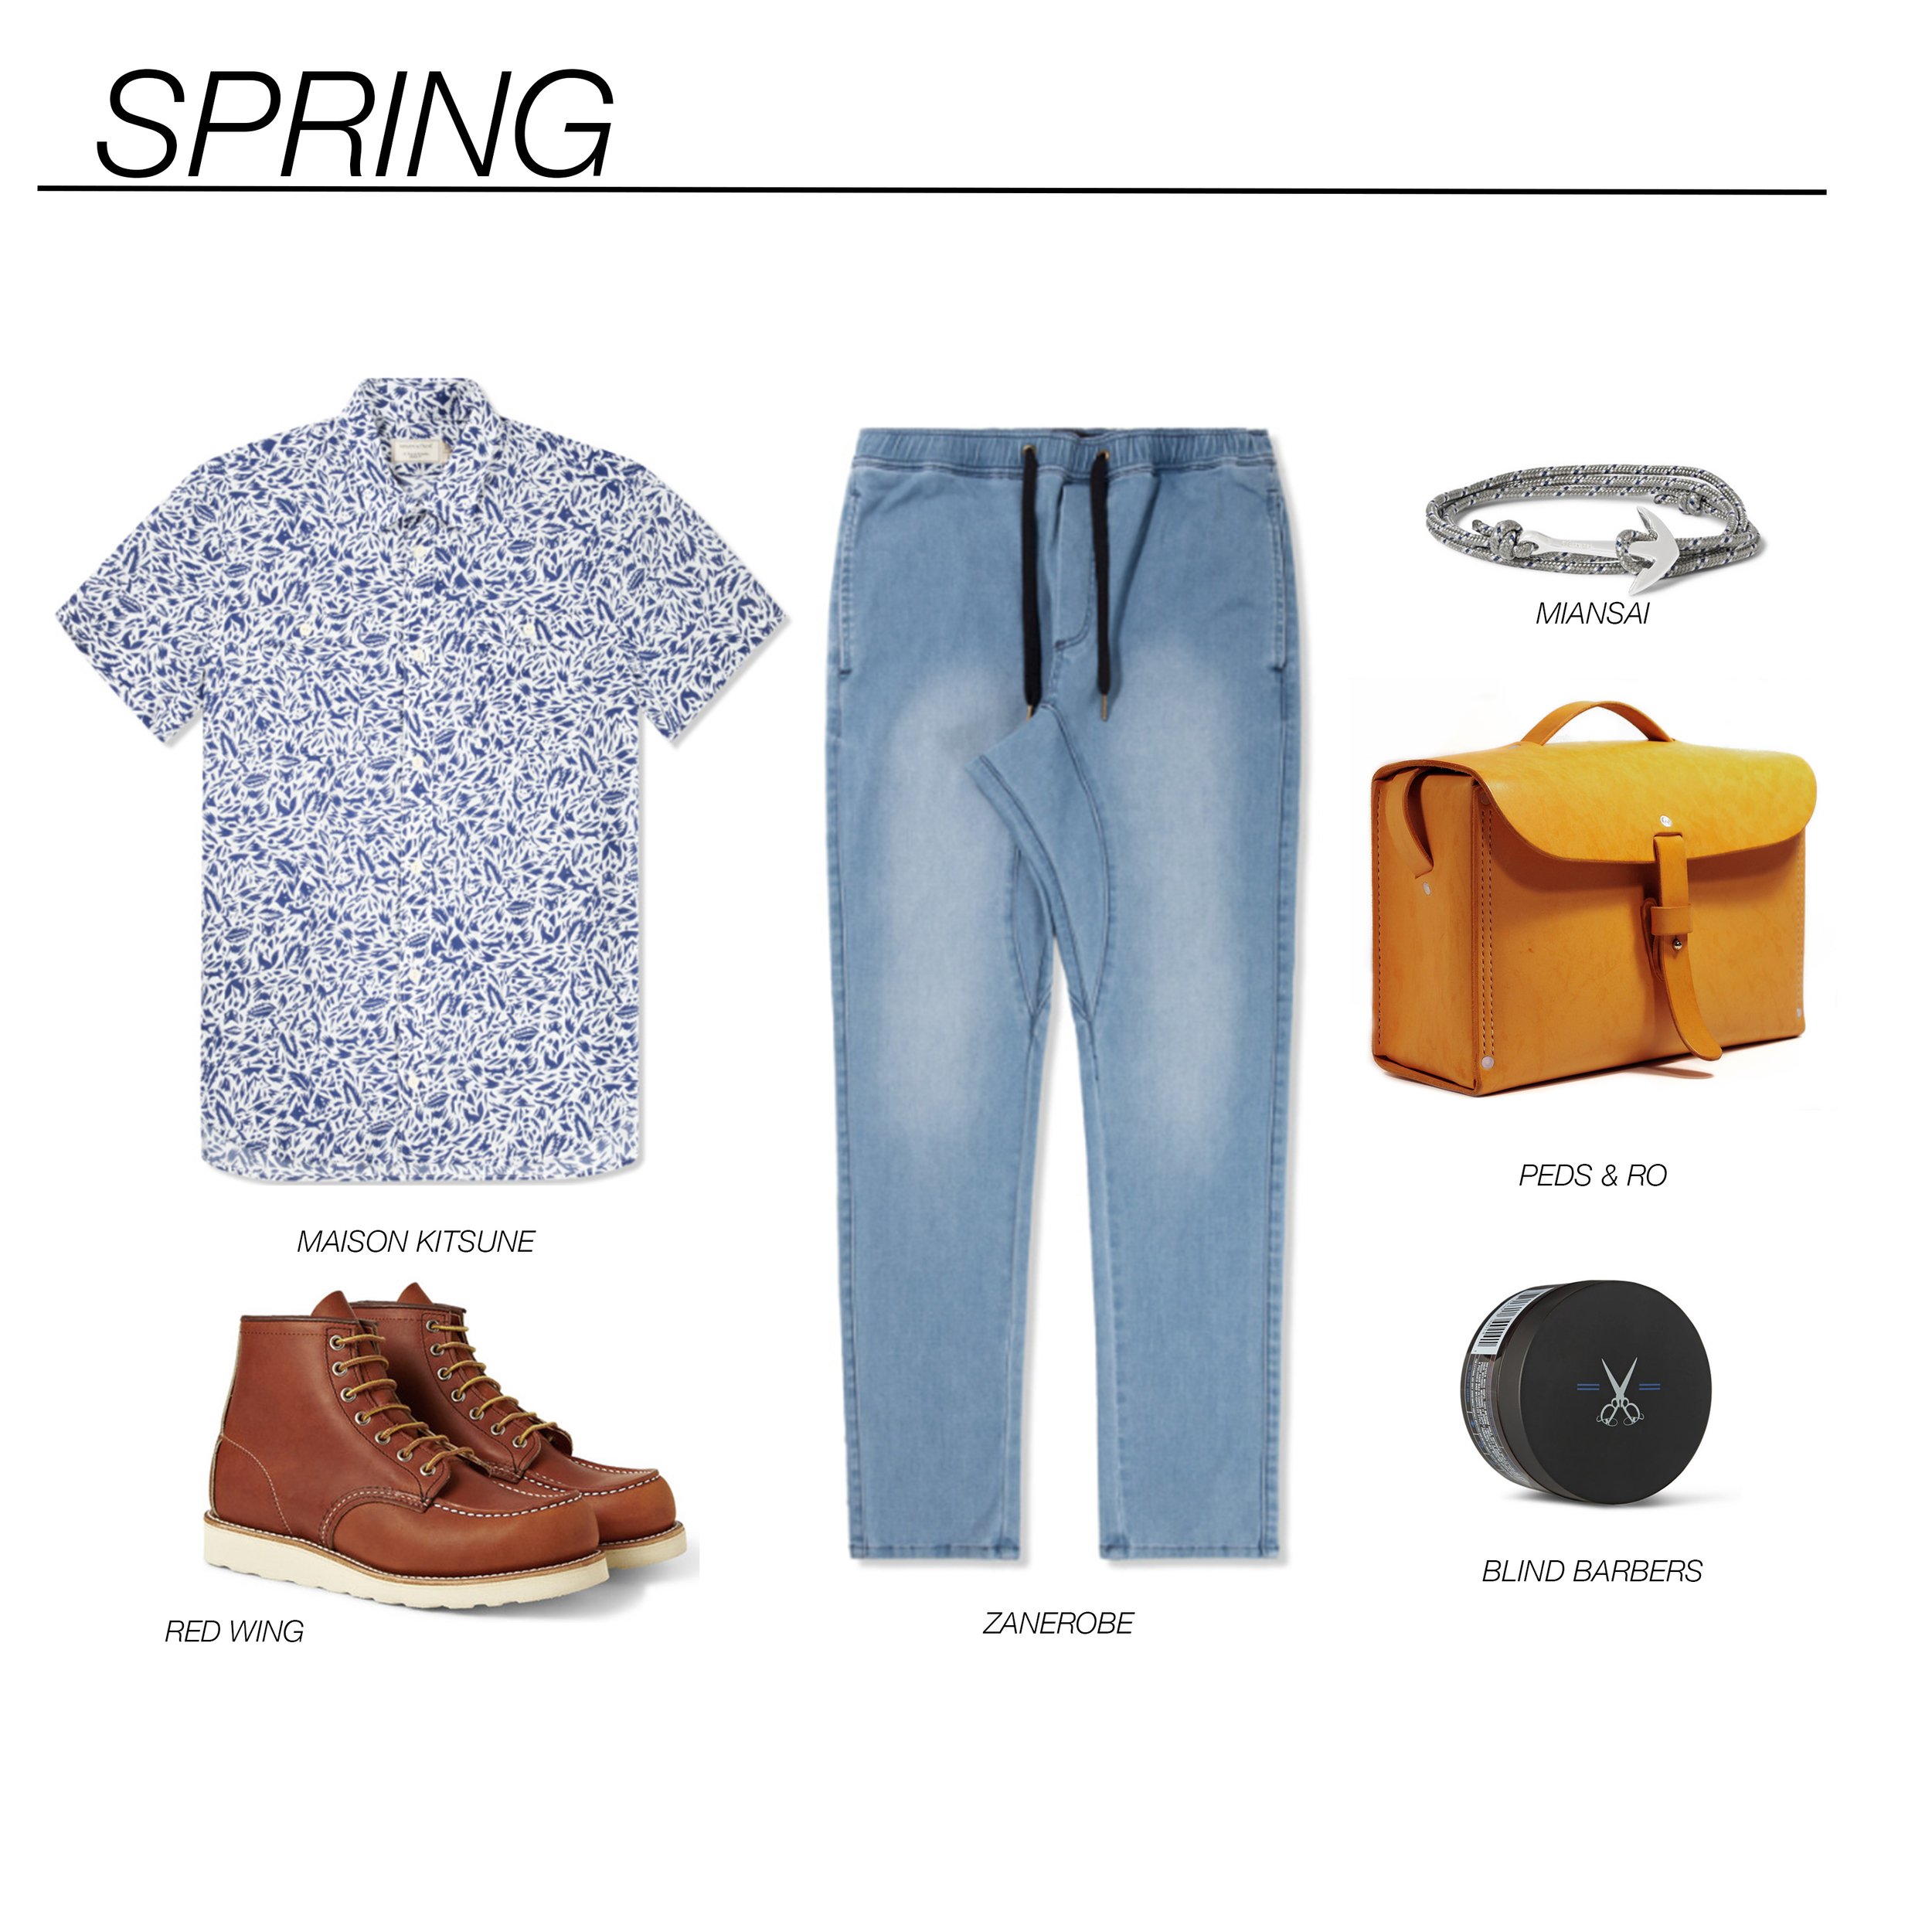 Spring Outfit.jpg